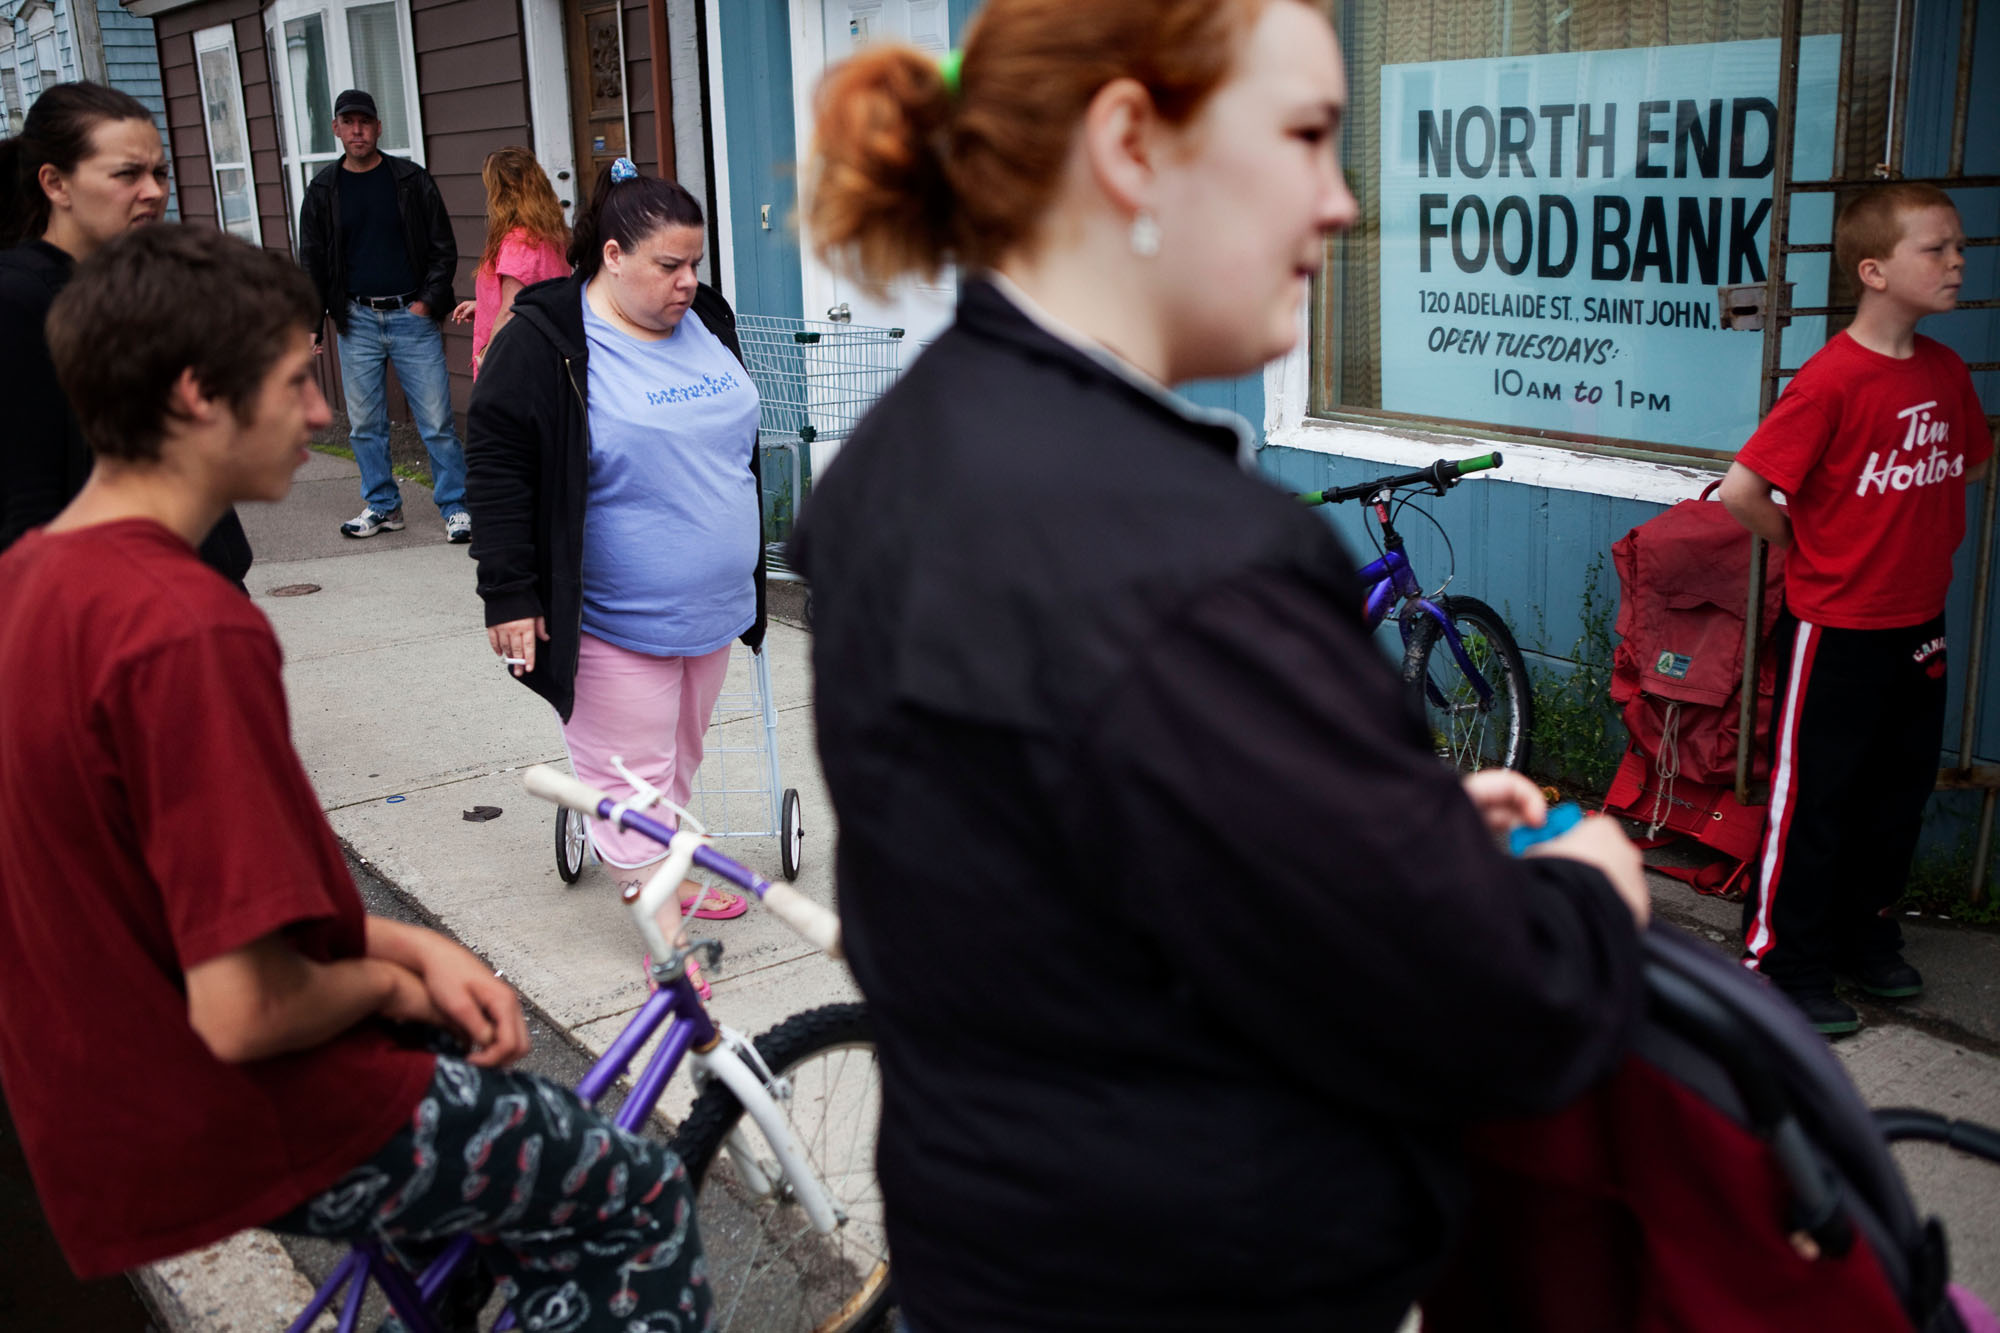 People wait for their numbers to be called at the food bank on Adelaide Street.